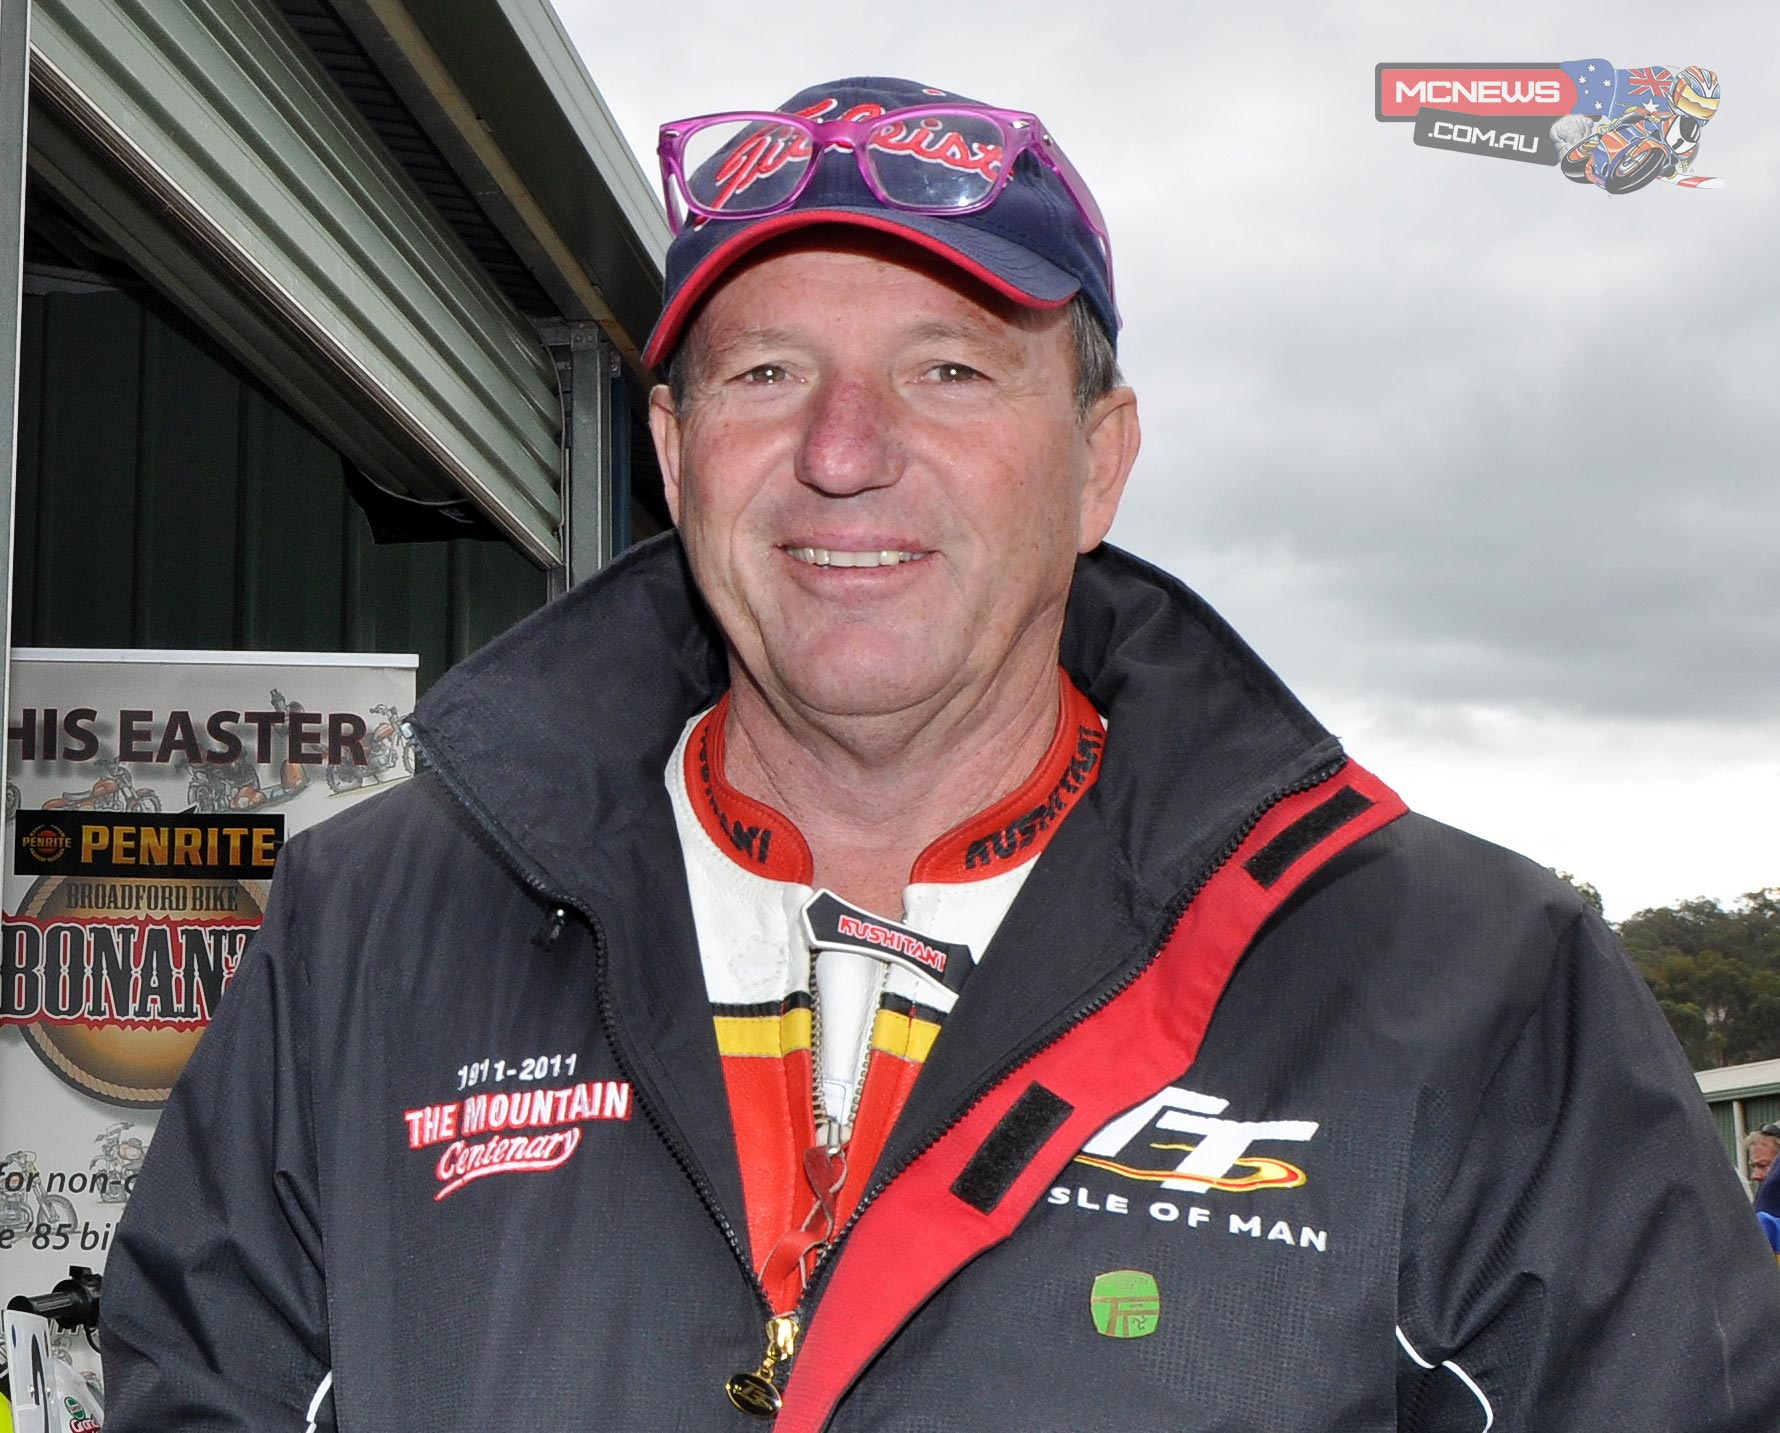 Graeme Crosby to take over NZ team captaincy for this weekend's Island Classic historic bike meet at Phillip Island